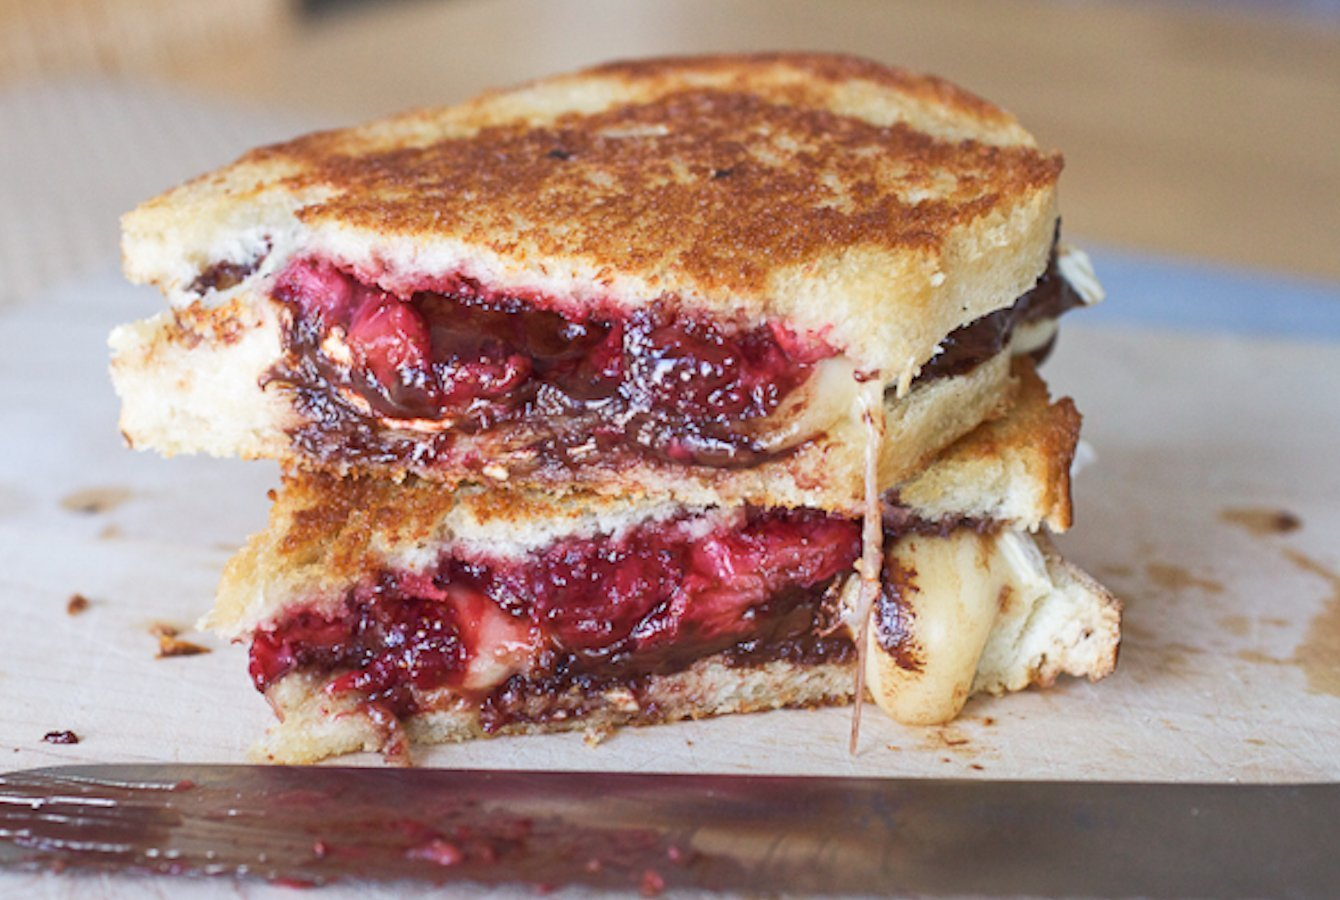 Roasted Strawberry, Dark Chocolate, and Brie Grilled Cheese Sandwich